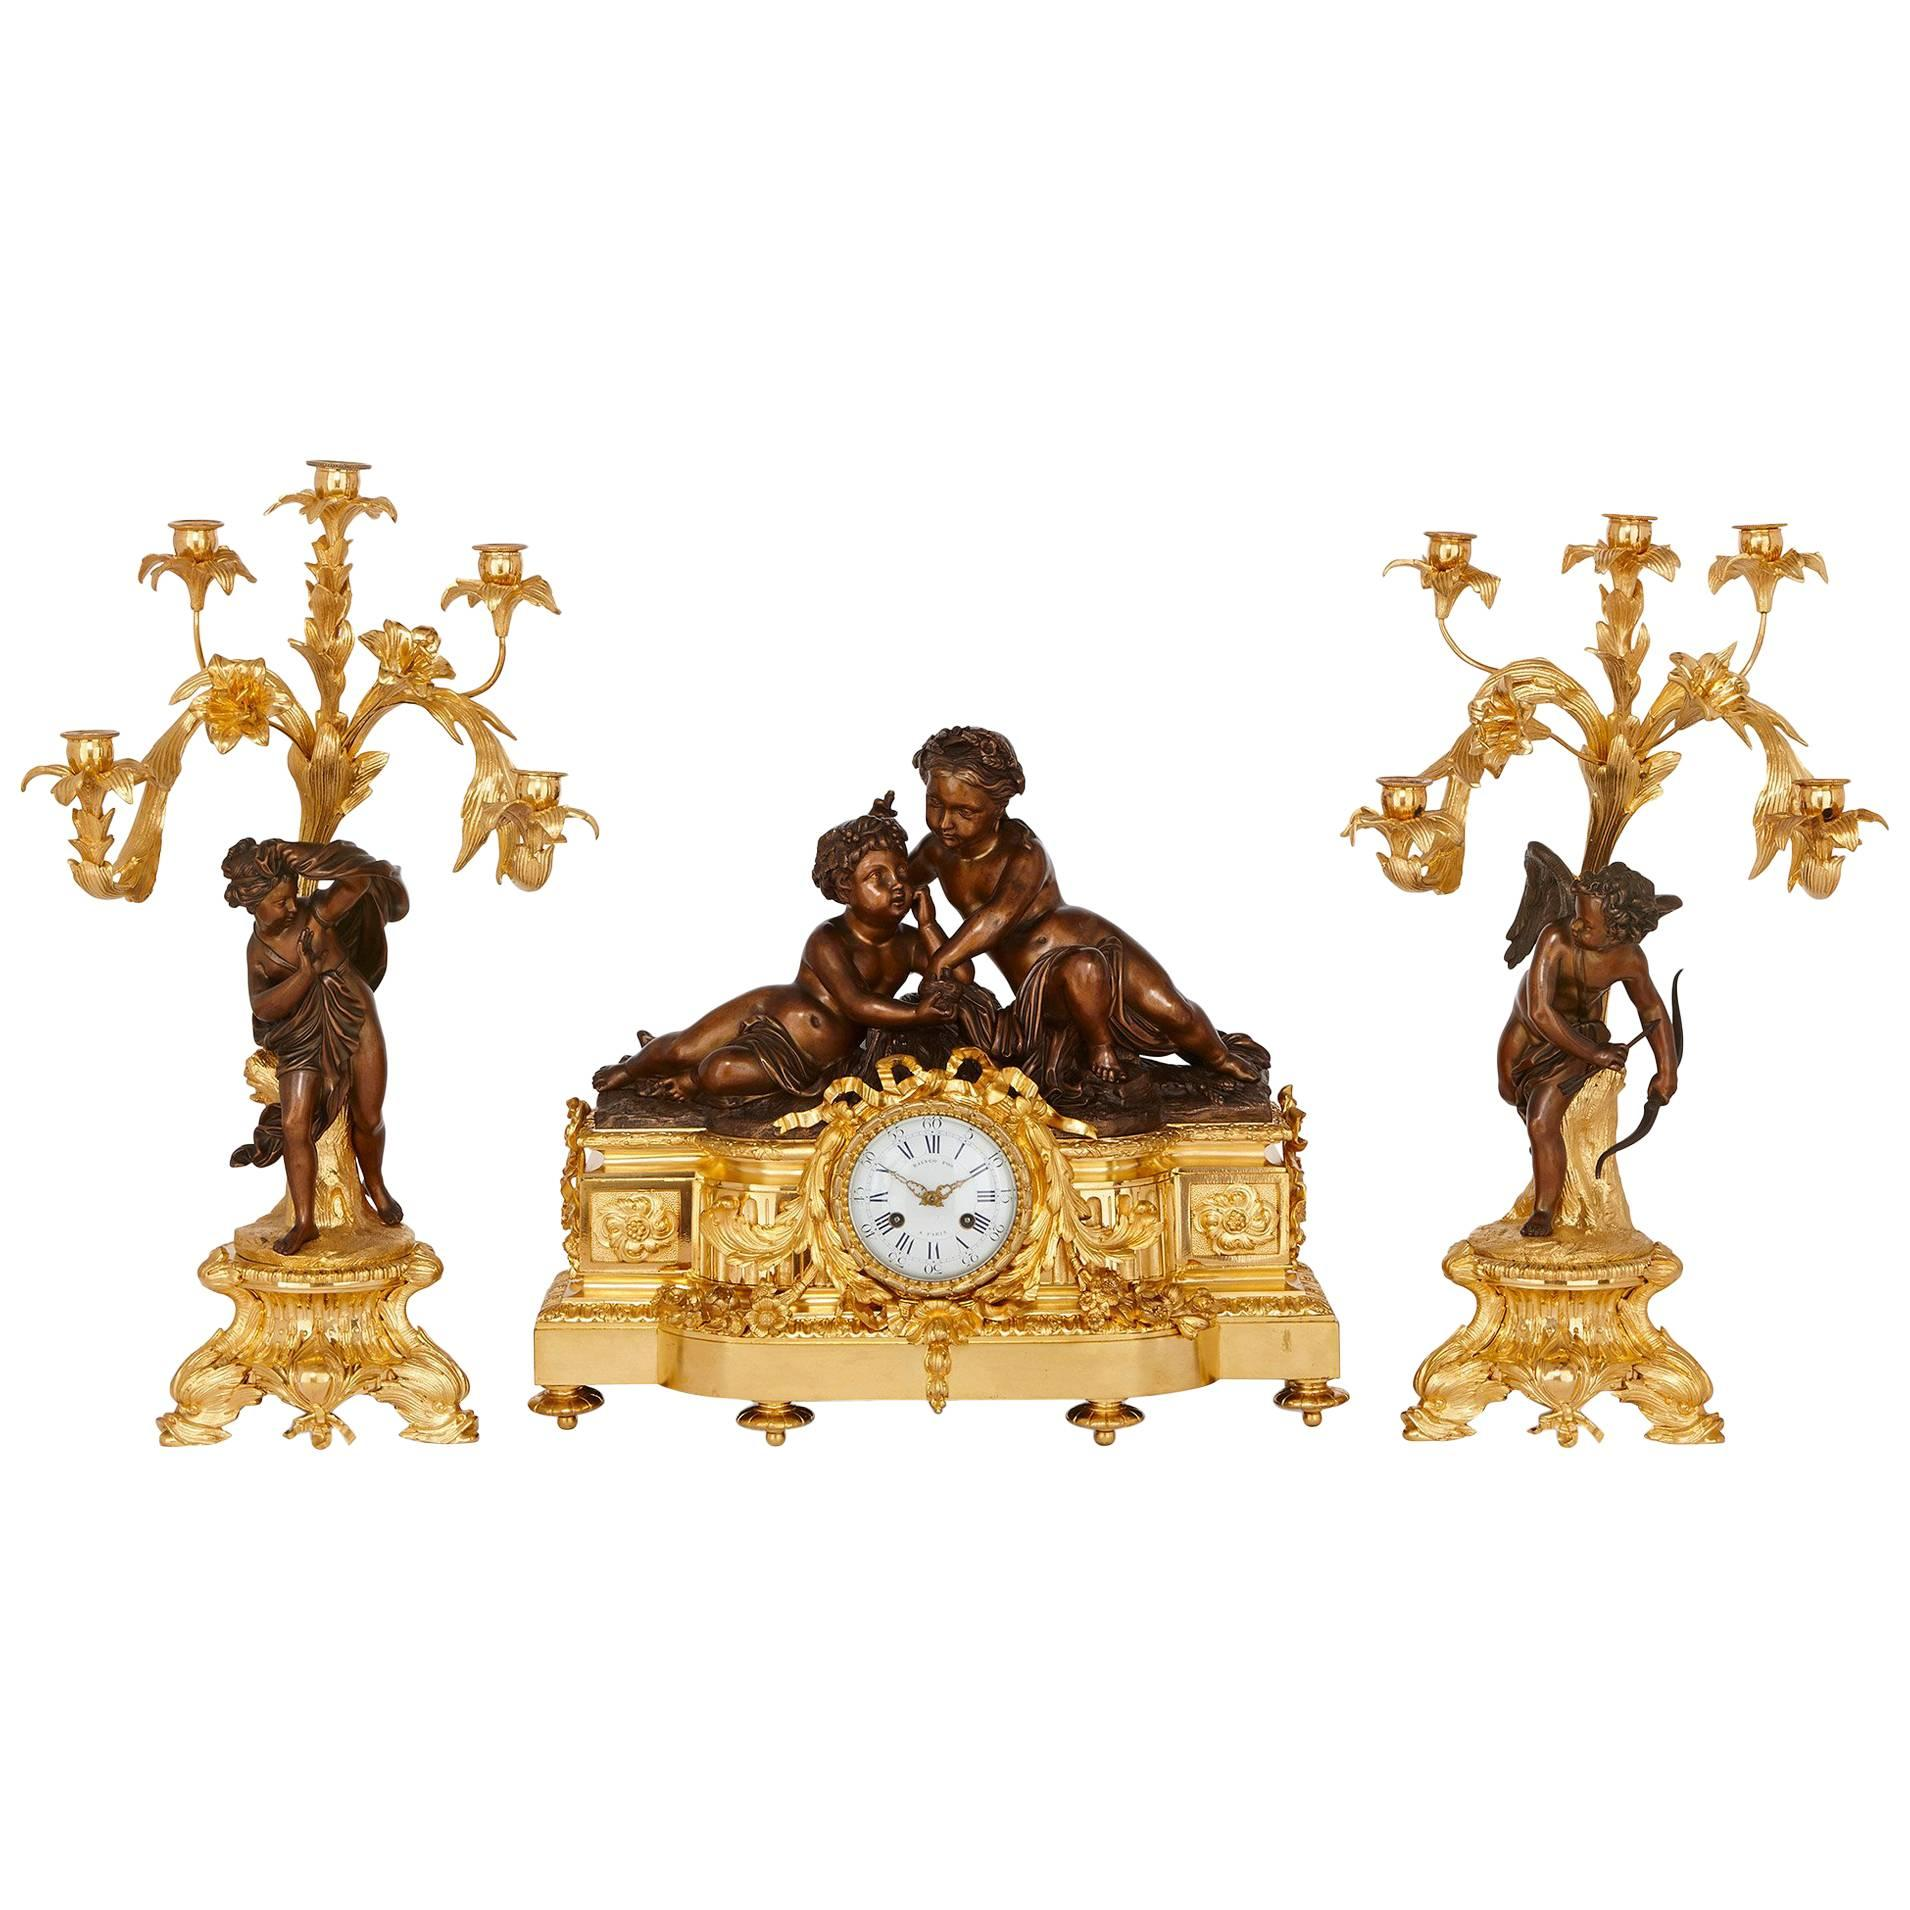 Napoleon III Period Ormolu and Patinated Bronze Clock Set by Picard